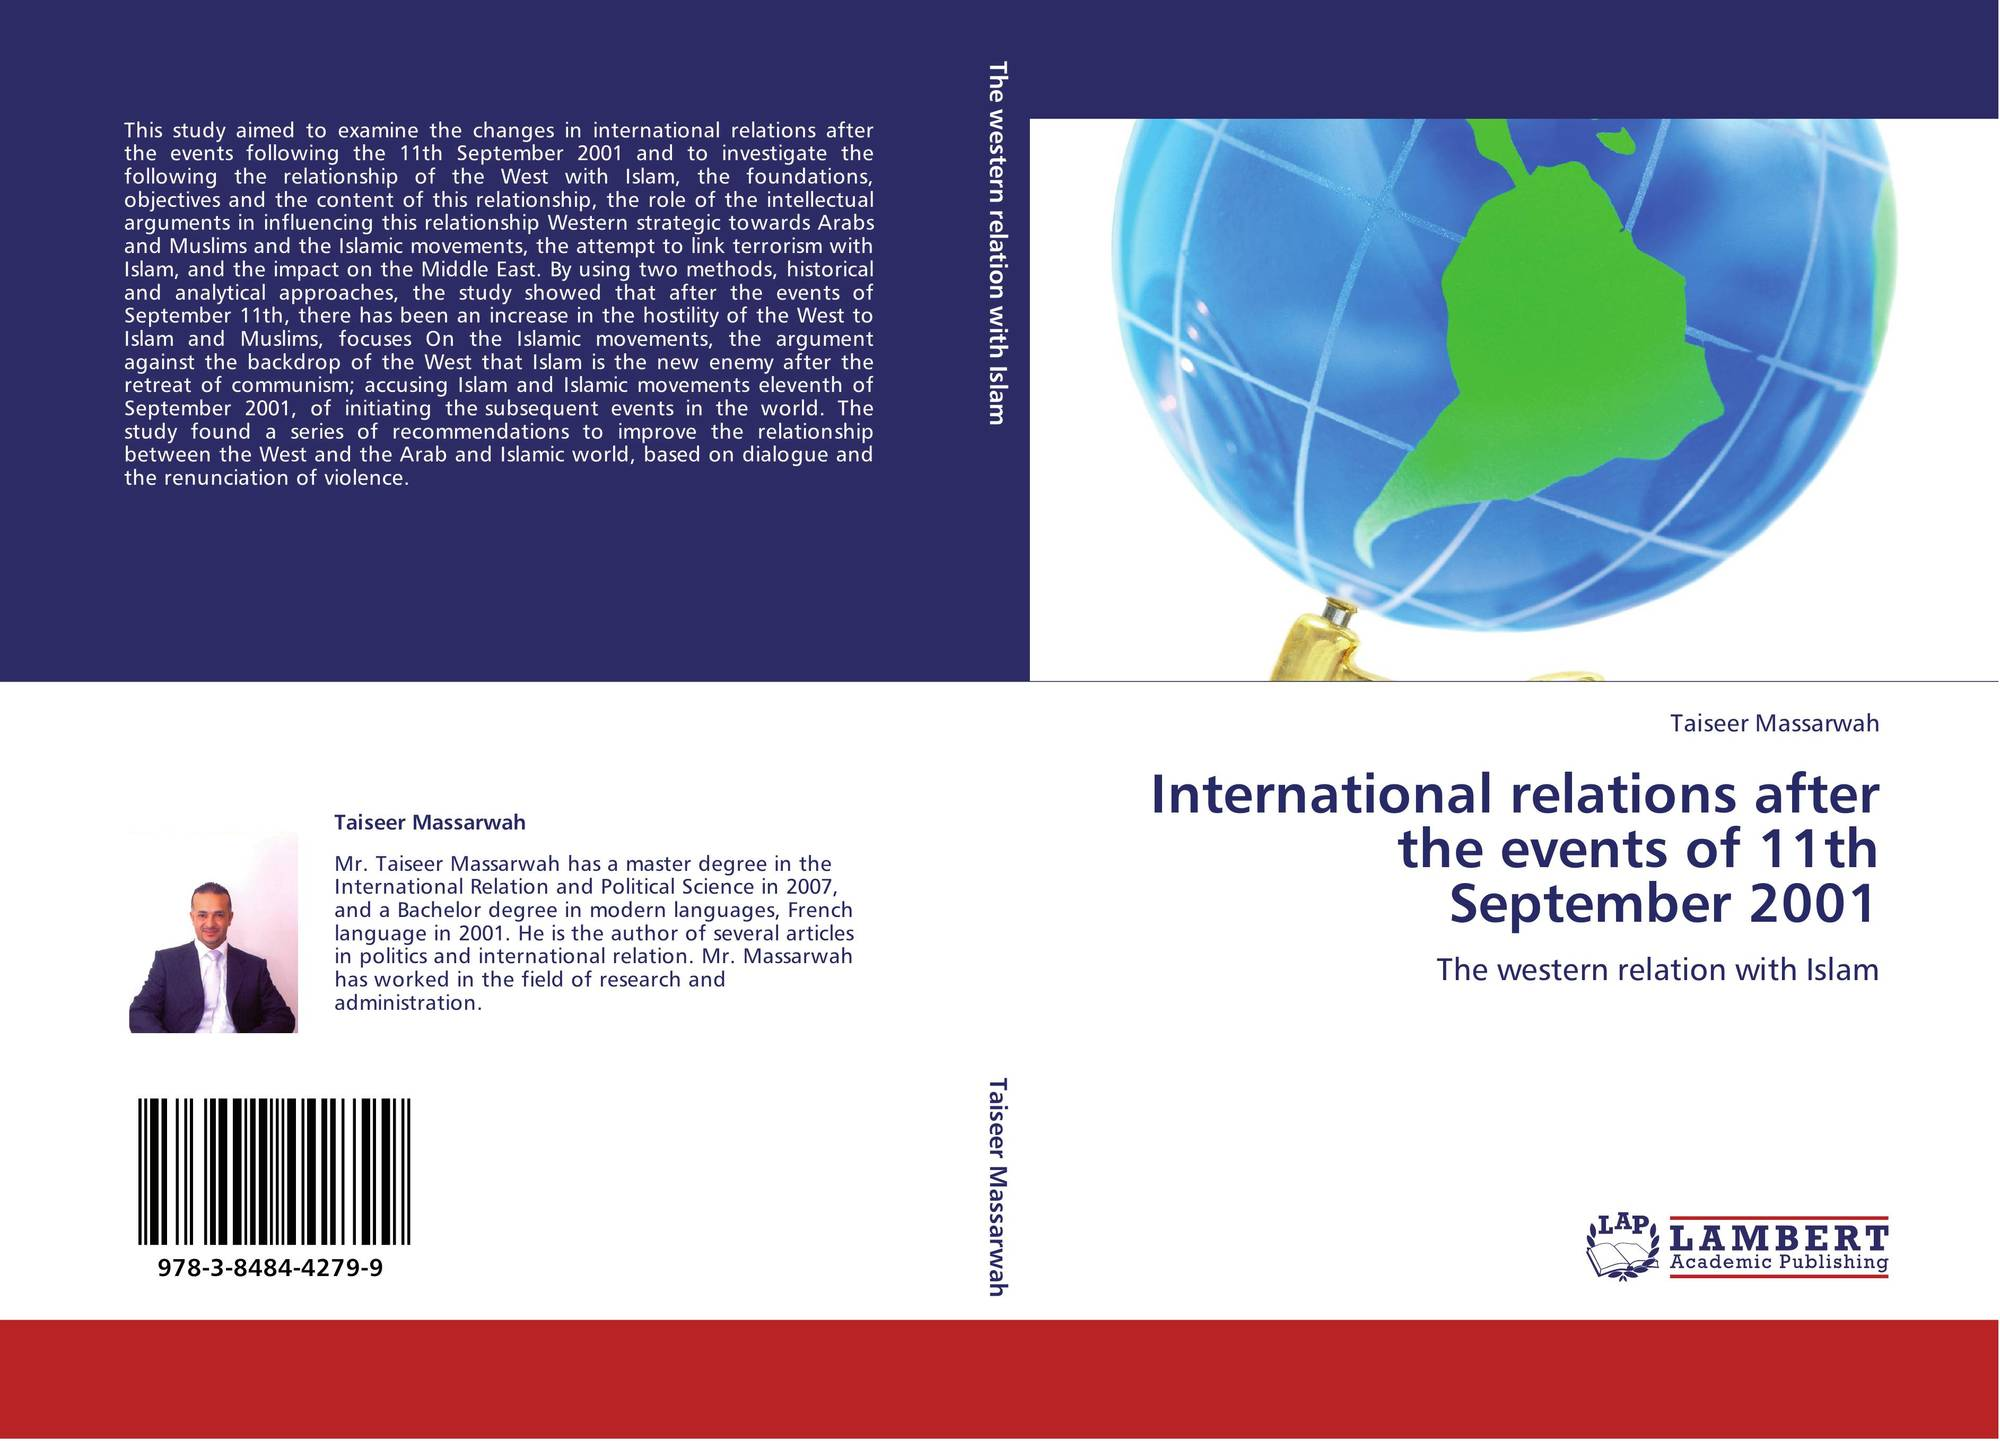 intl relations A 'day 0' introduction to international relations for beginners, placing the reader inside crucial issues and debates so they can understand how things work and where they fit.